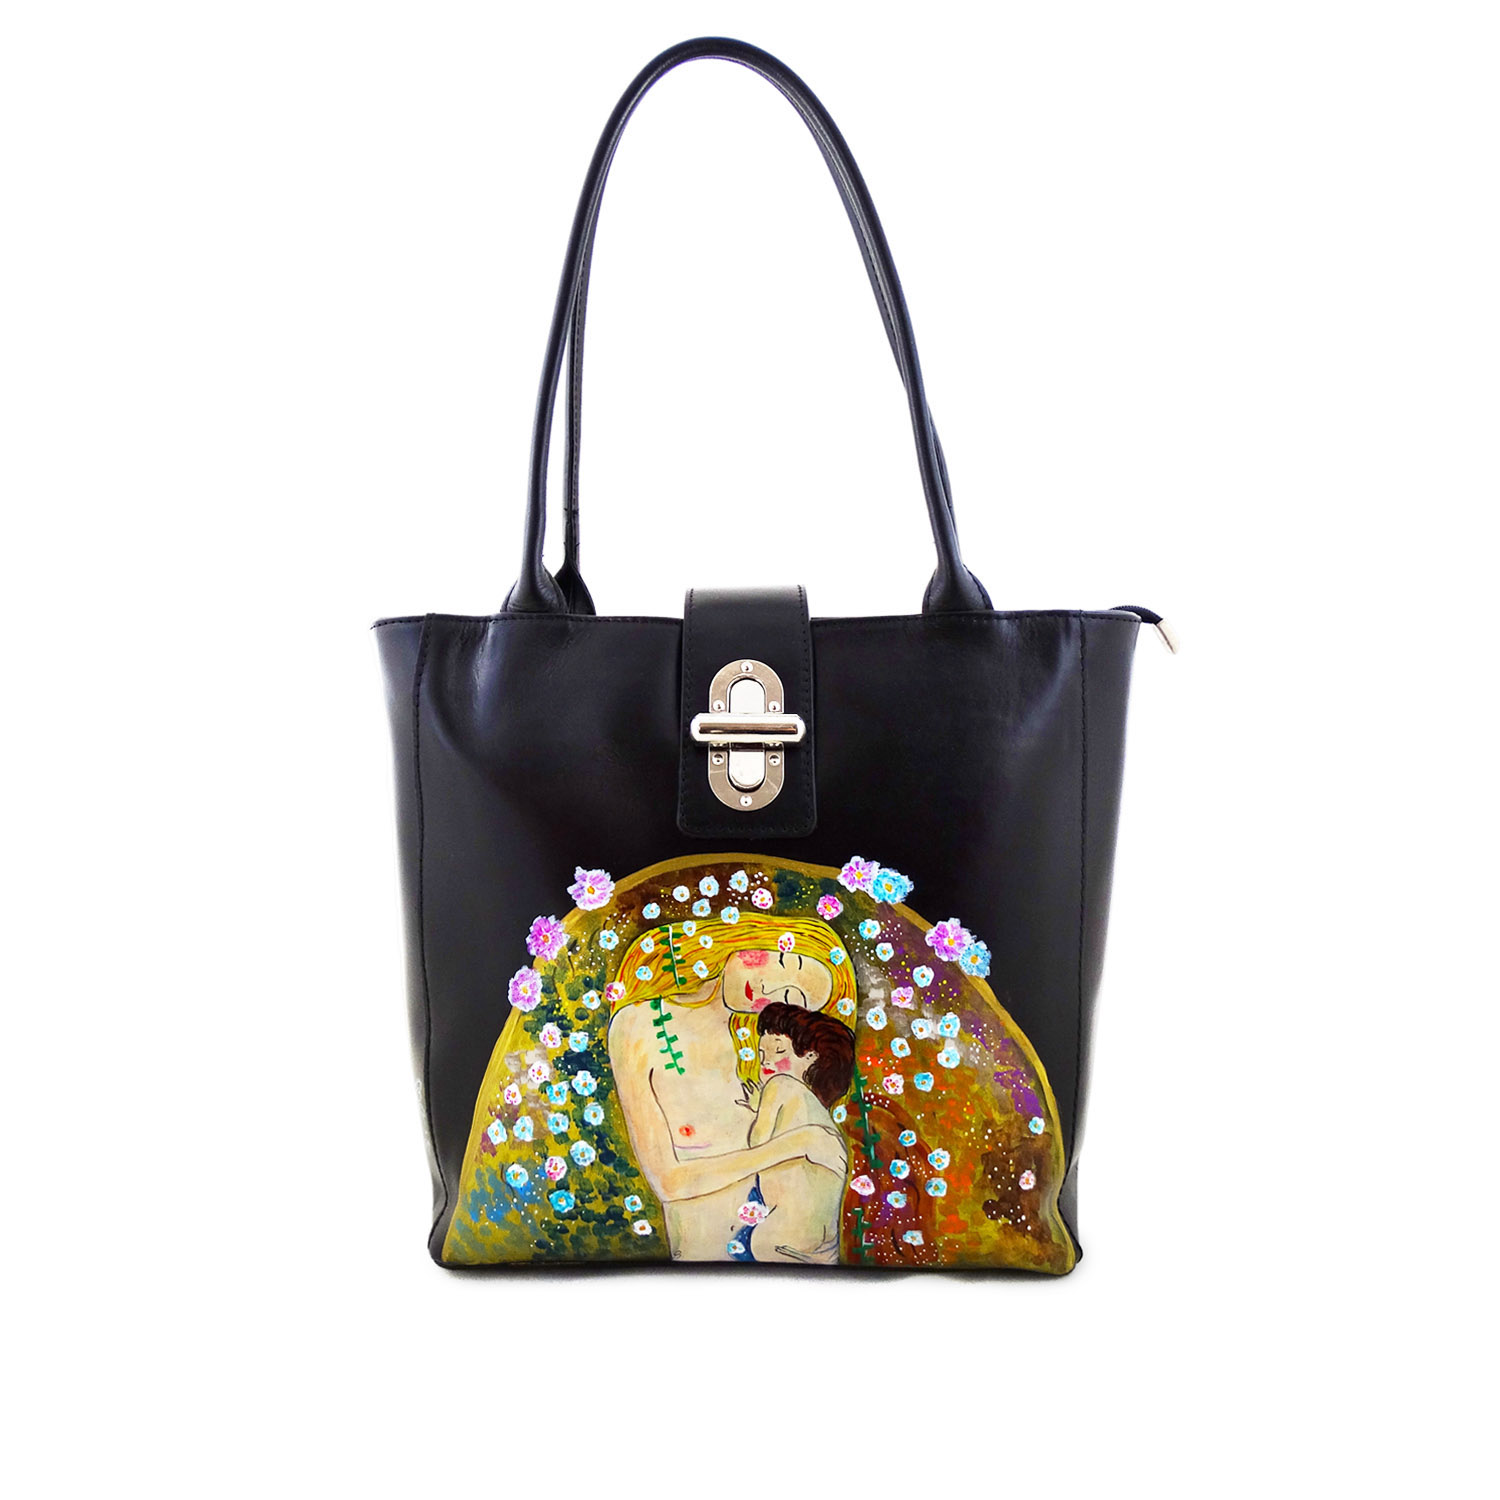 Handpainted bag - Mother and child by Klimt